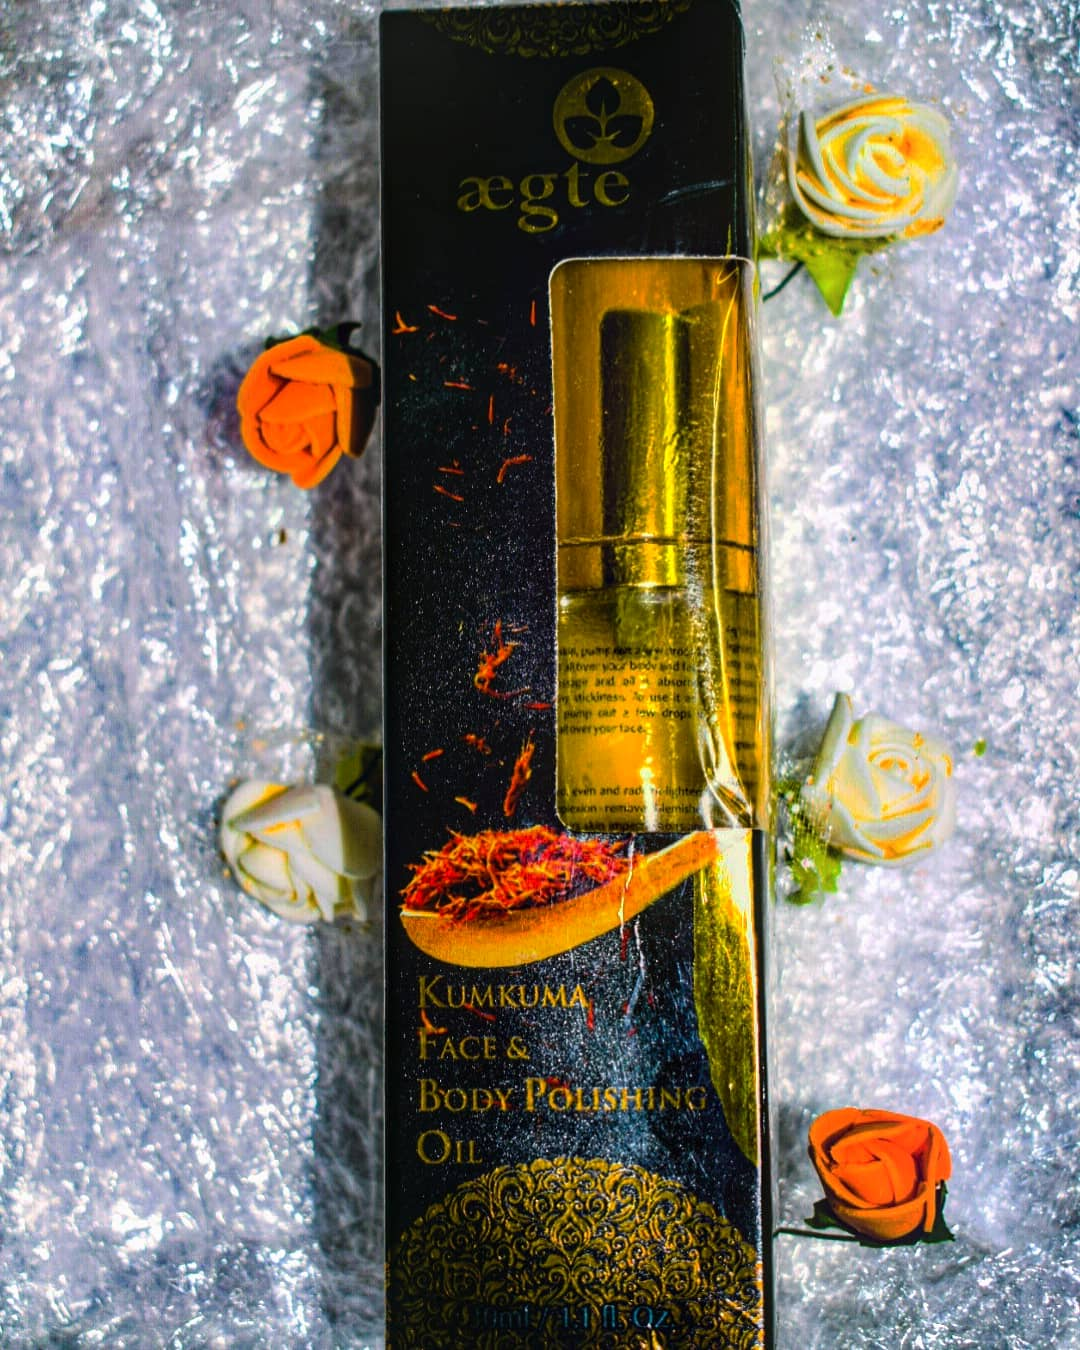 Aegte Ultra Luxurious Kumkuma Face and Body Polishing Oil – 30 ml / 1 fl. Oz -A must have for winter season.-By wanderlust1